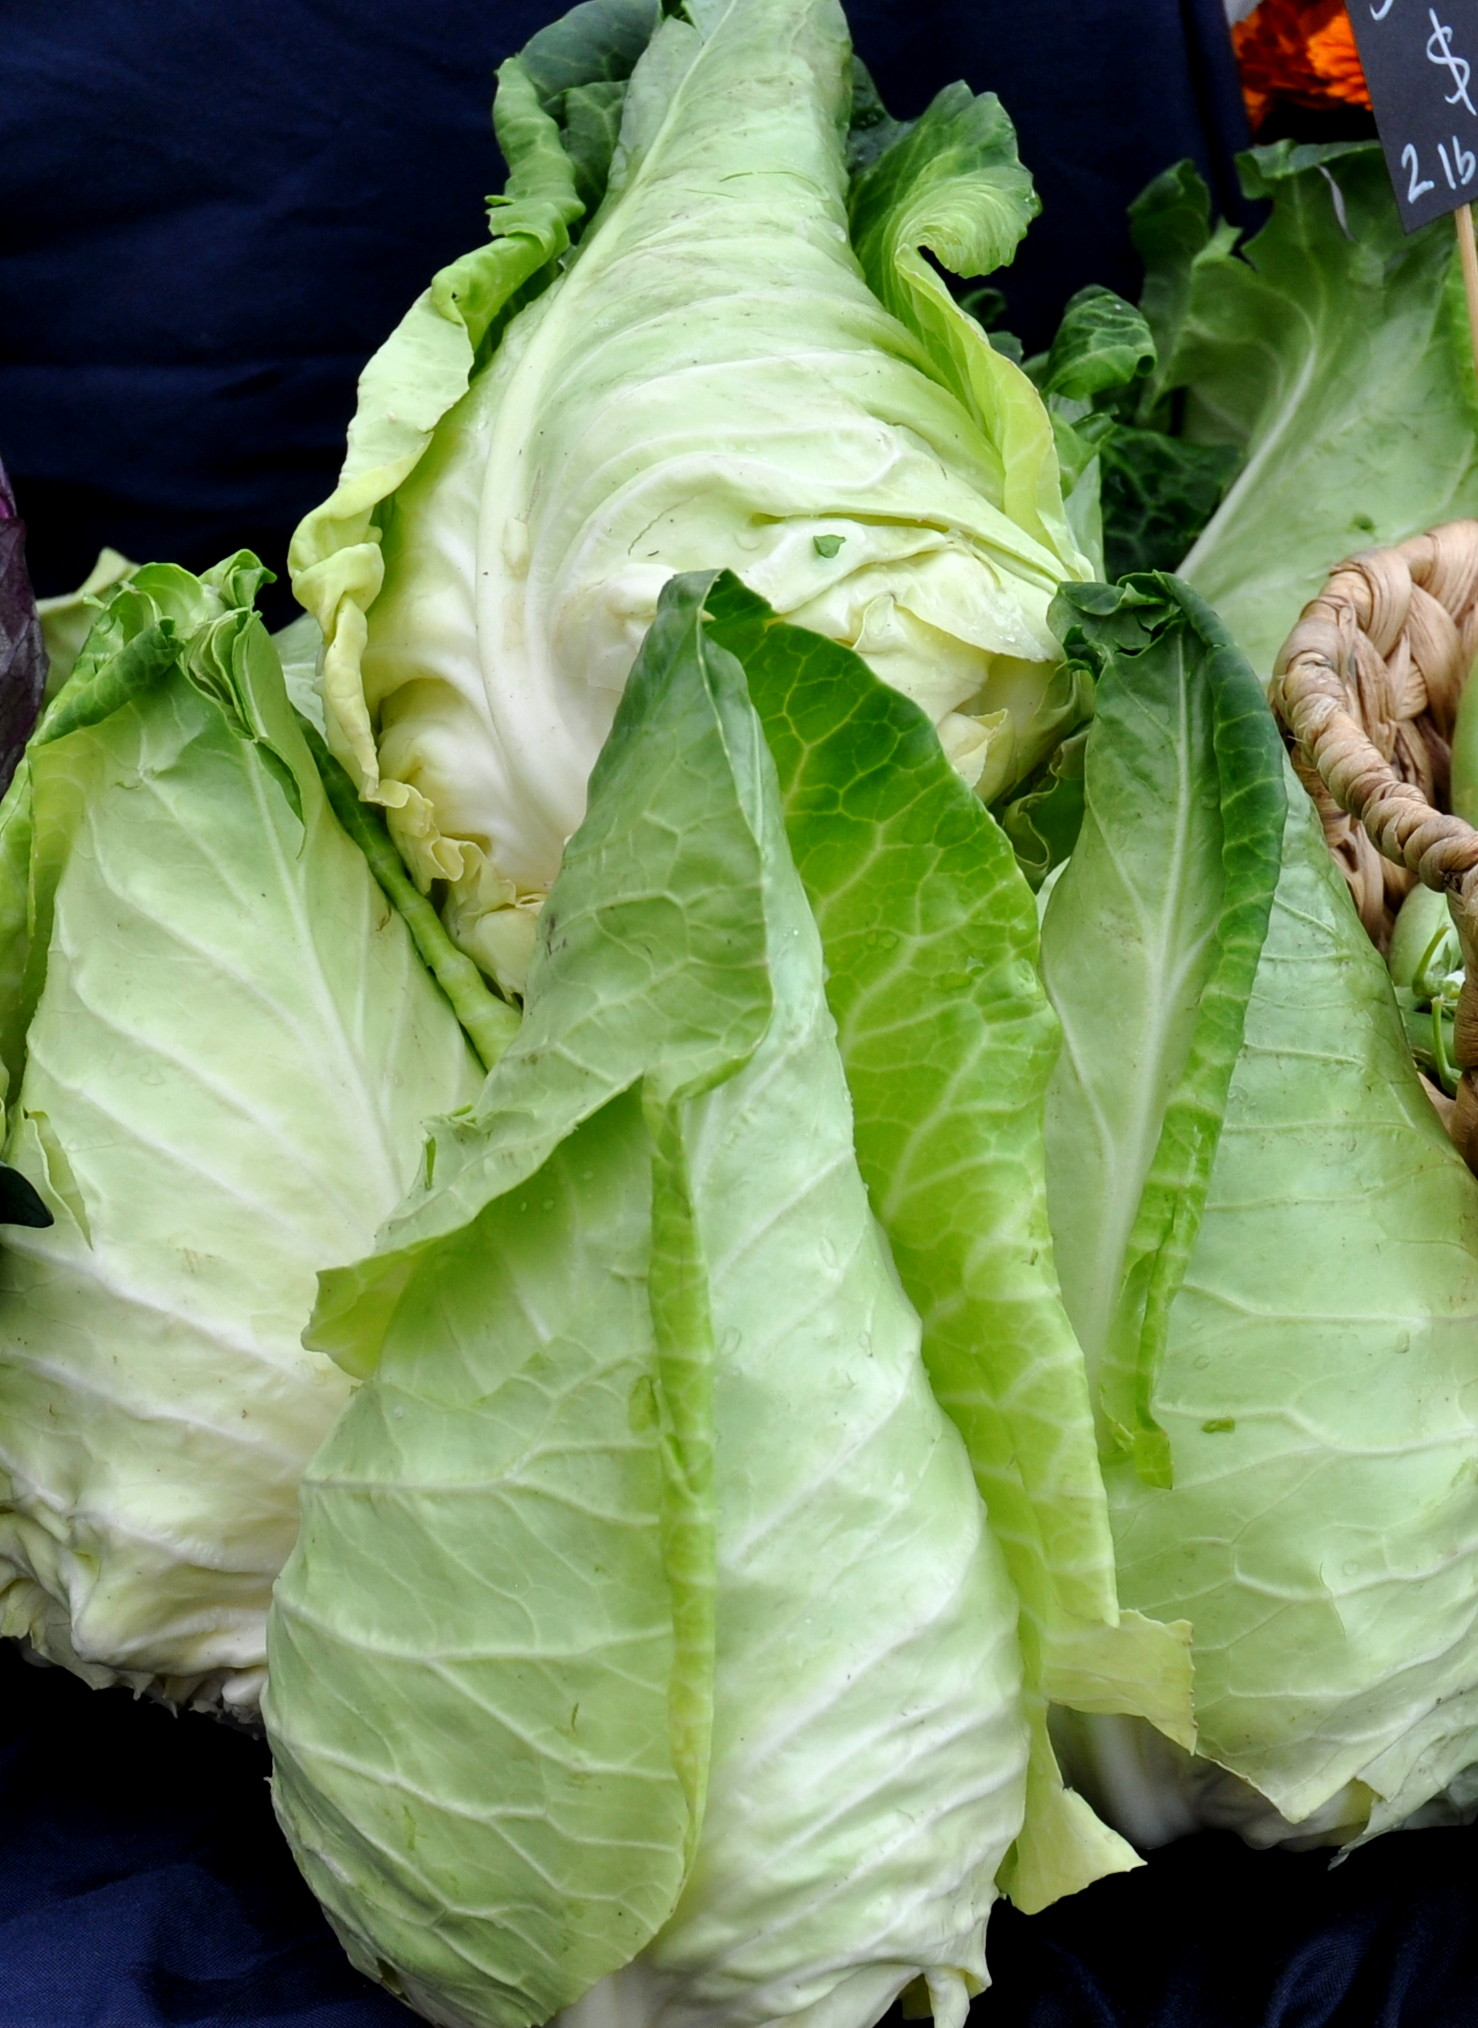 Caraflex cabbage from Kirsop Farm. Photo copyright 2014 by Zachary D. Lyons.